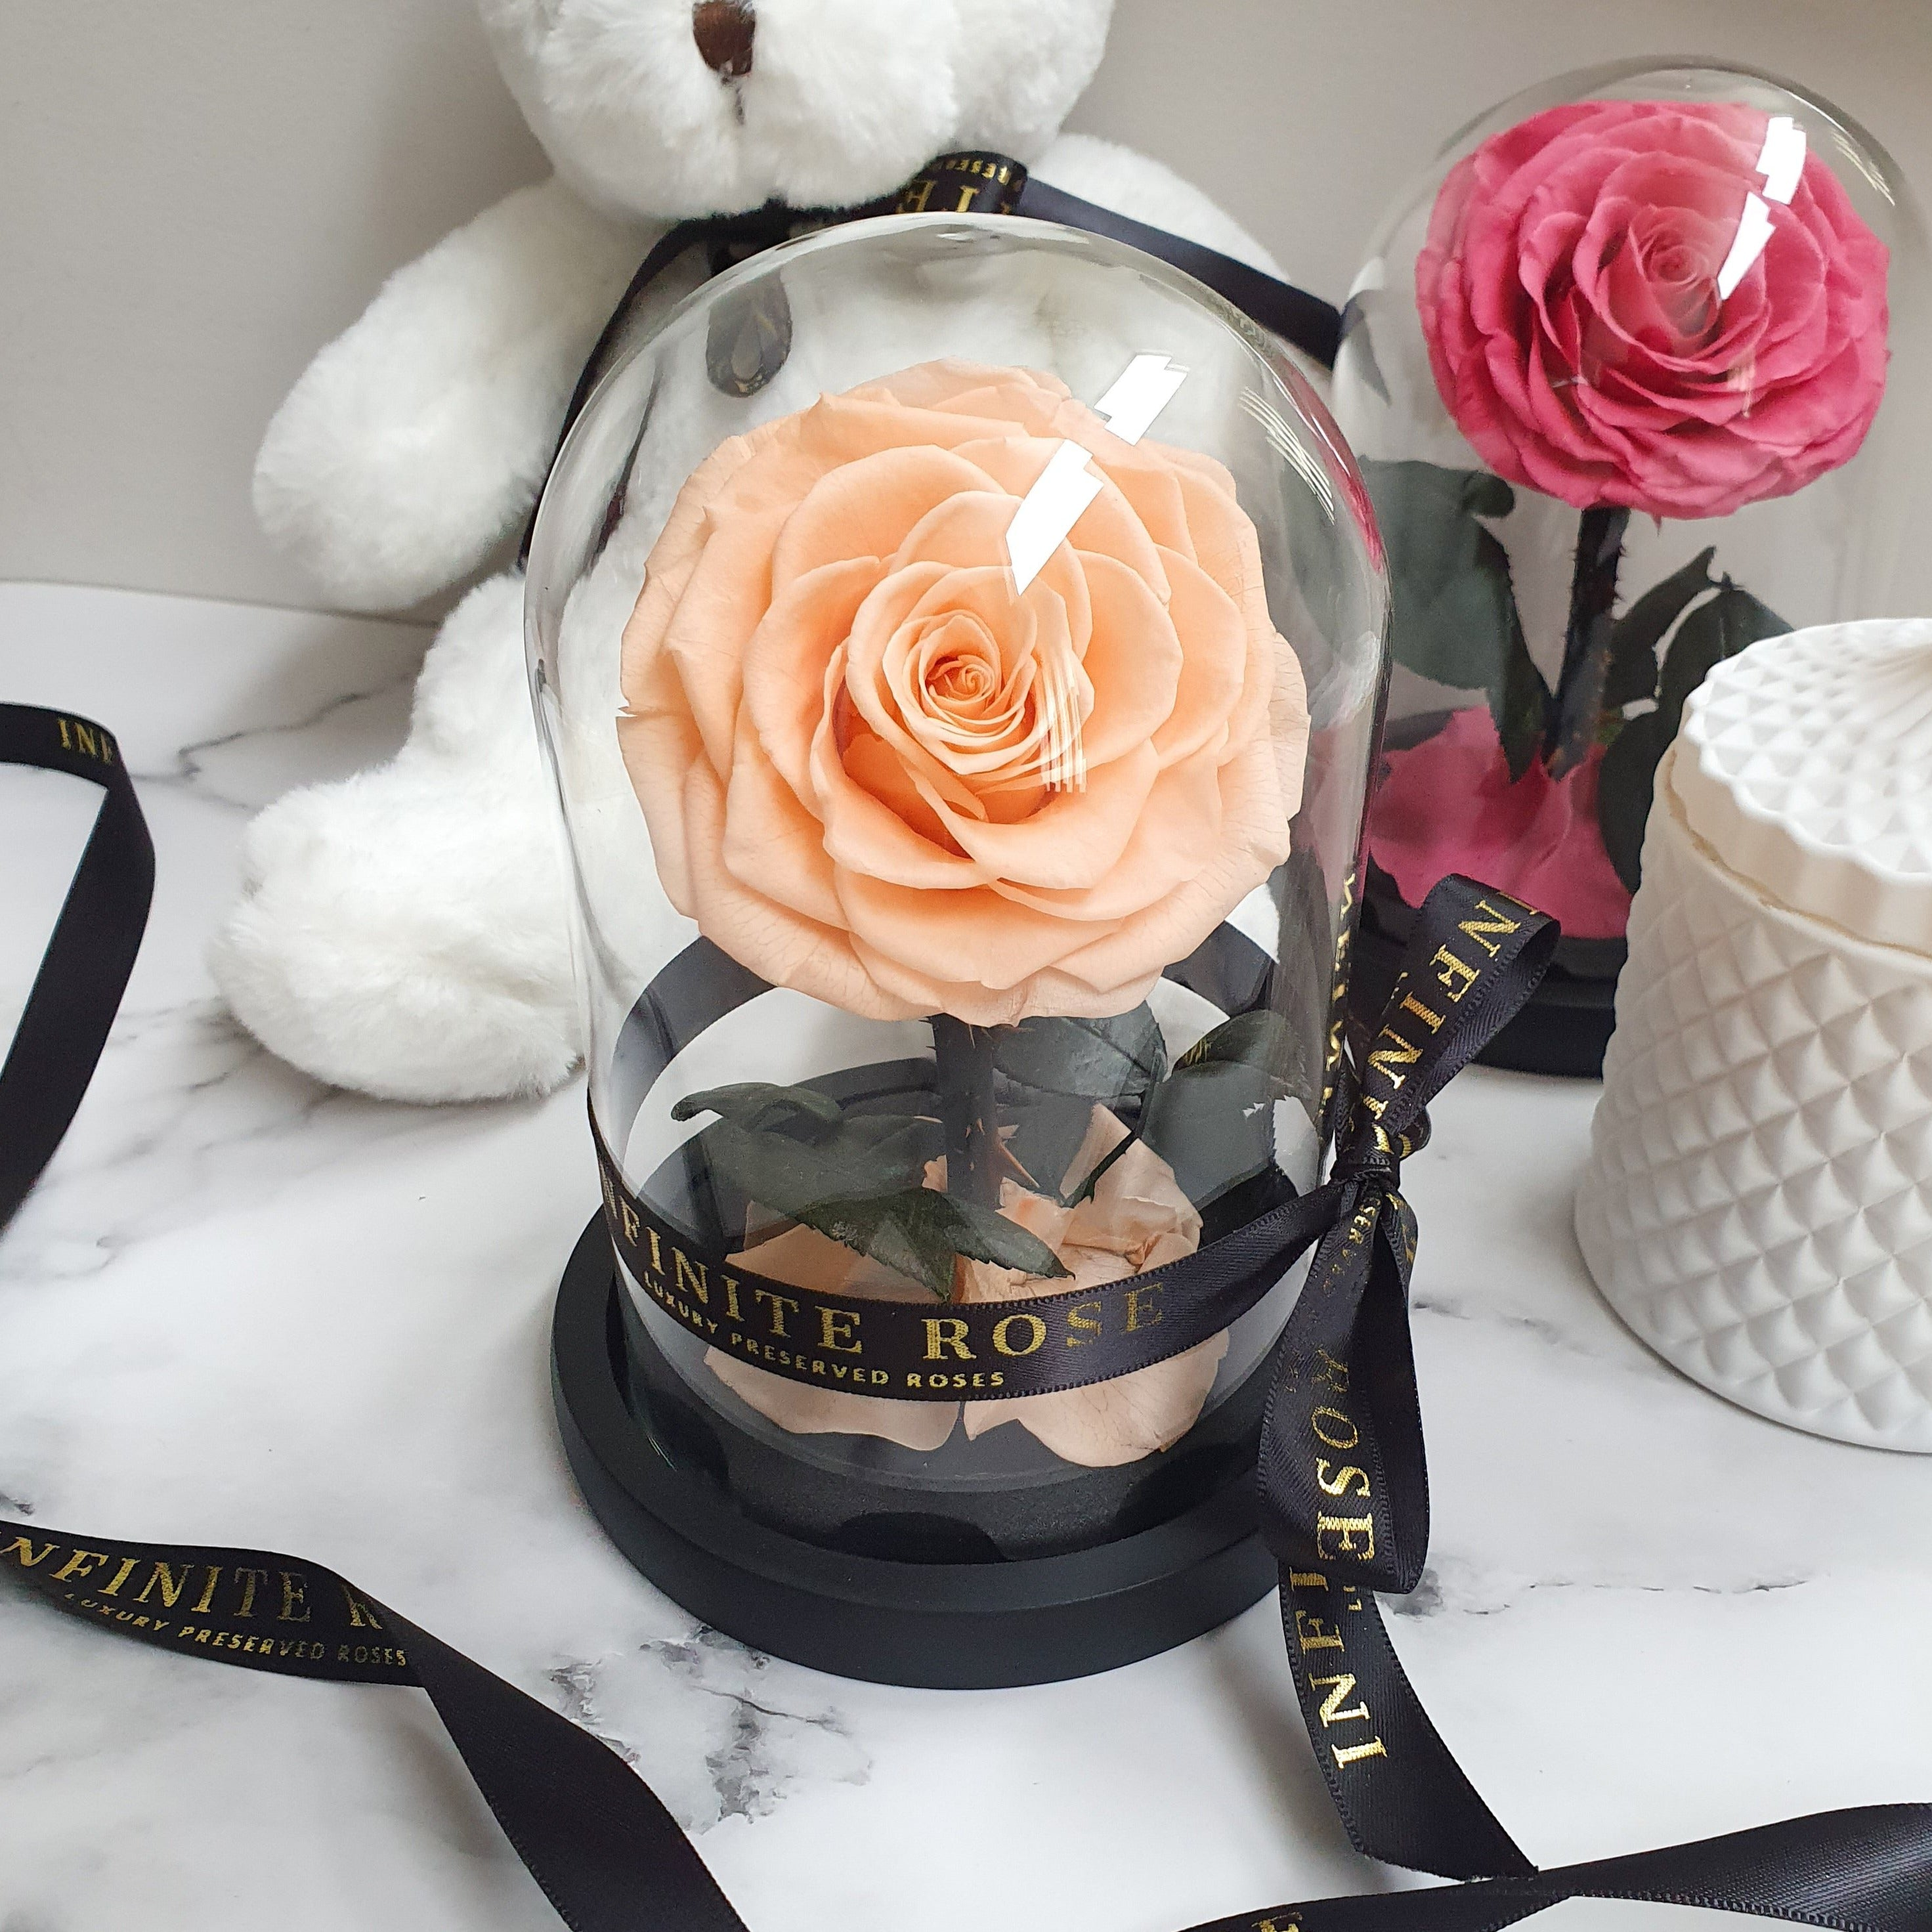 Infinite Rose | Petite Rose Dome in Peach | Roses That Last A Year